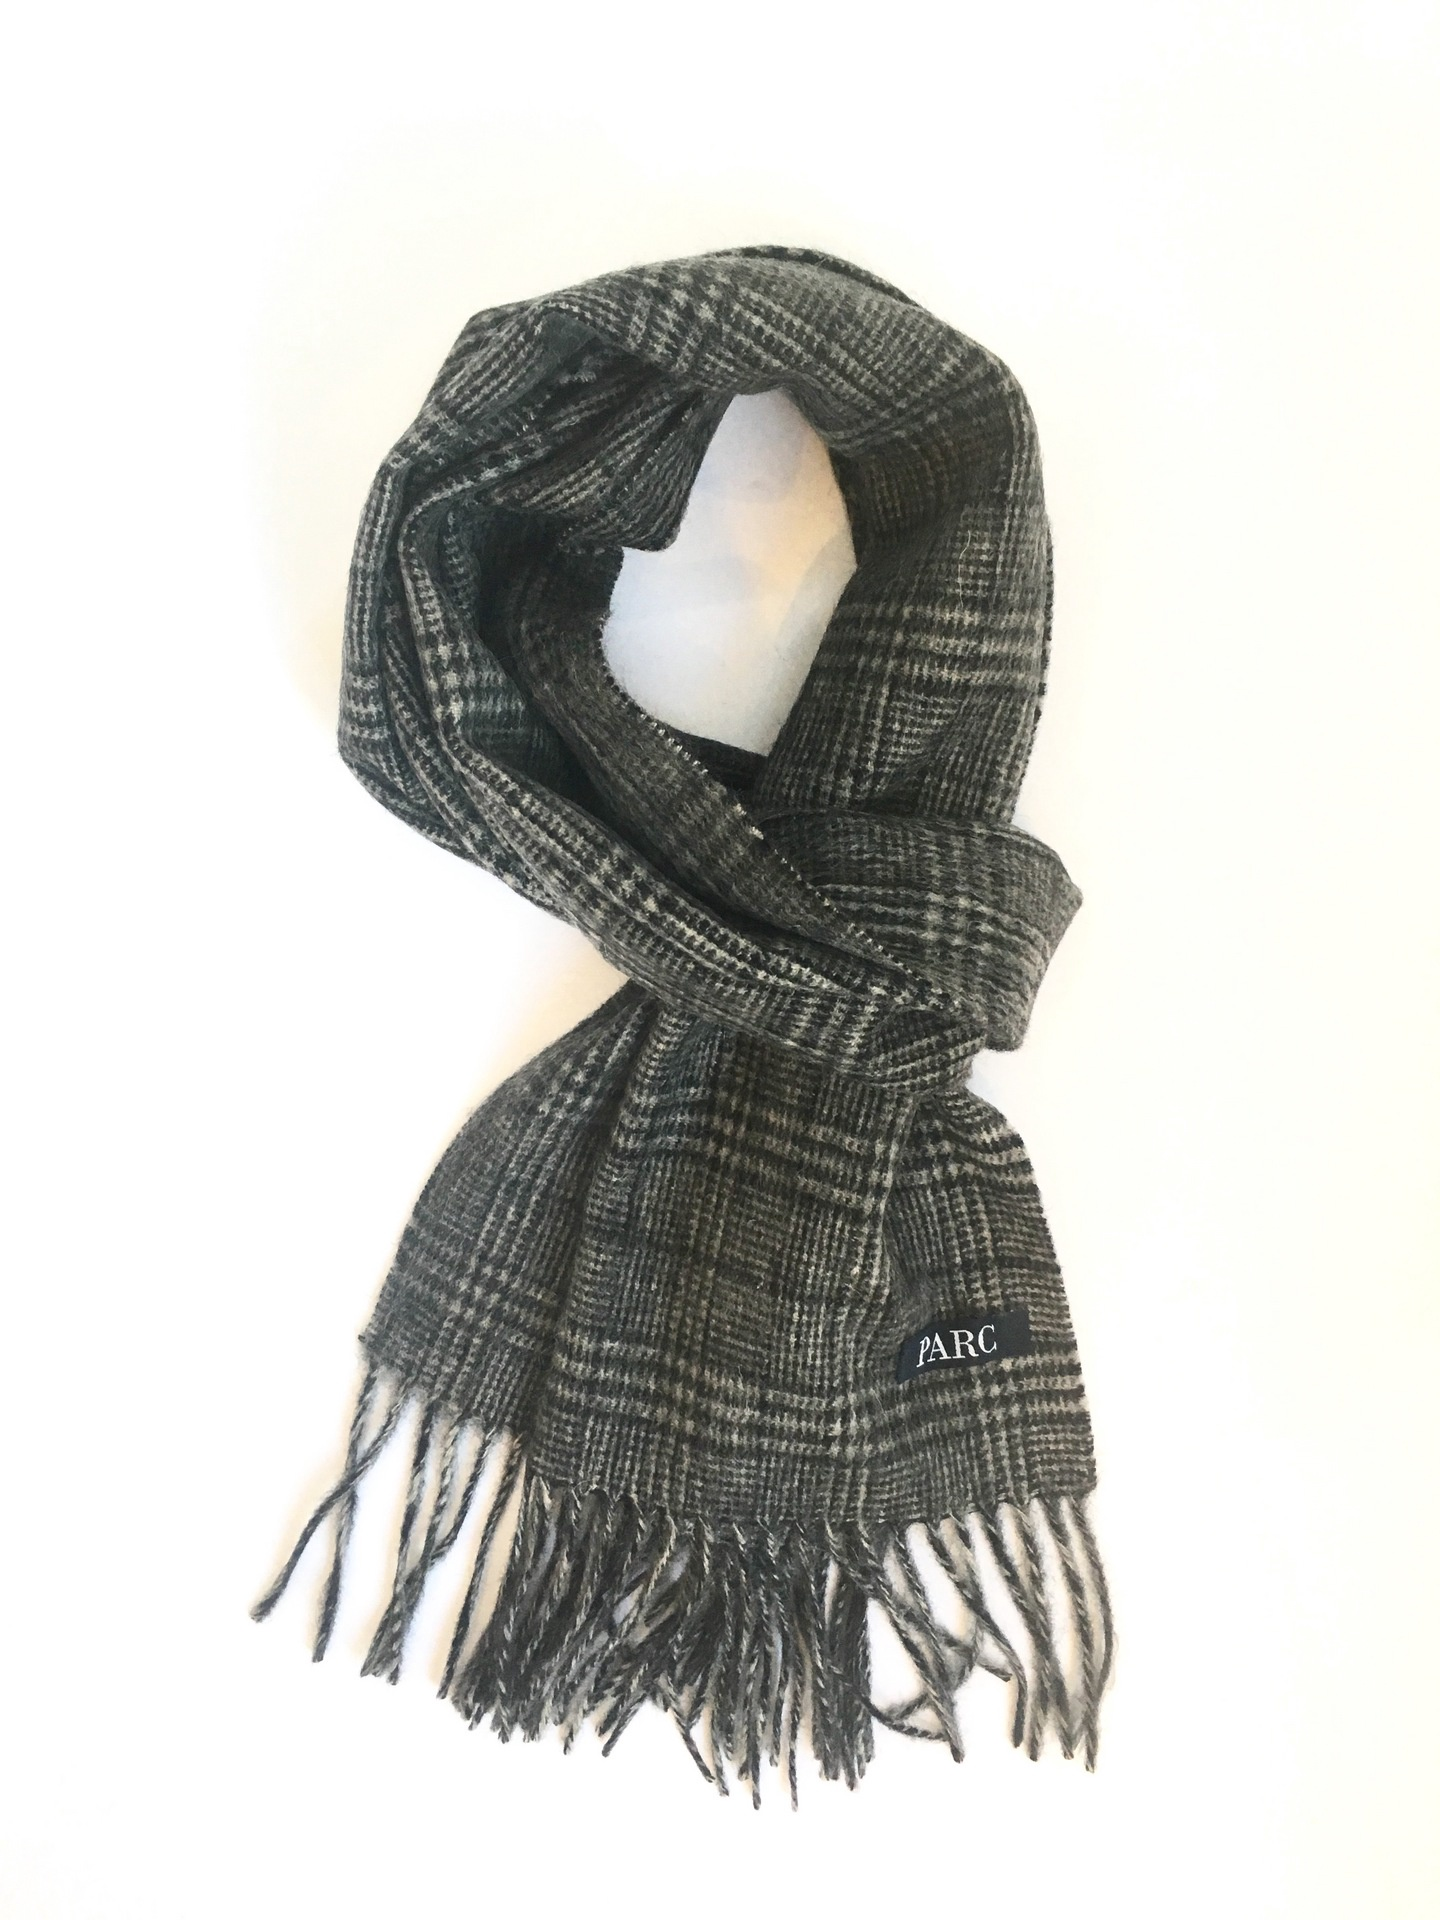 Parc City Boot Co. - Heavy Wool Scarf in Black & White Plaid